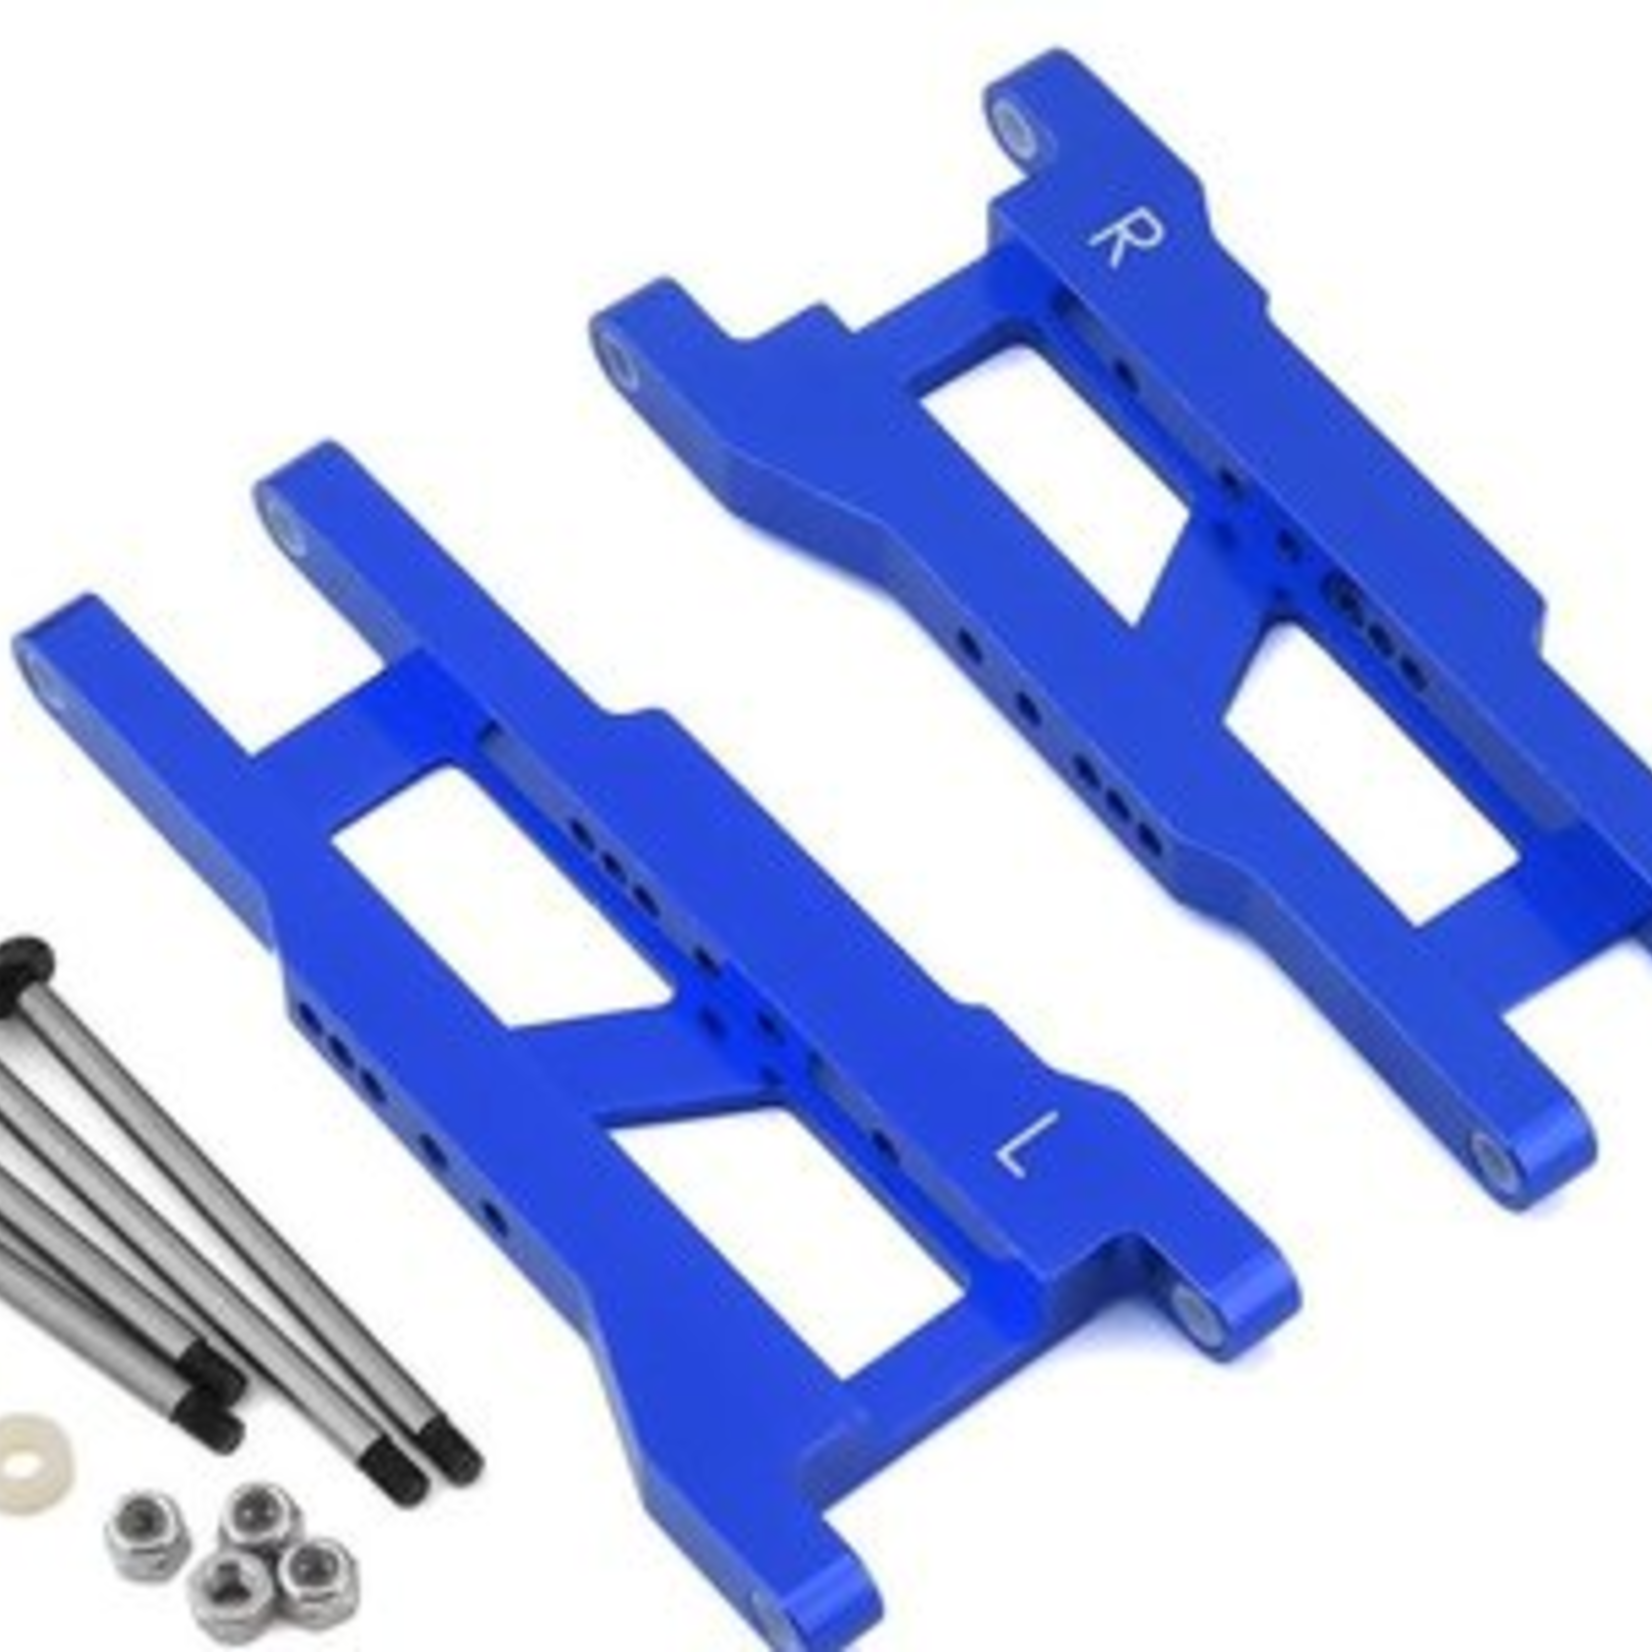 ST Racing Concepts SPTST3655XB ST Racing Concepts Heavy Duty Rear Suspension Arm Kit w/ Lock-Nut Hinge-Pins for Traxxas Rustler/Stampede 2WD (Blue)